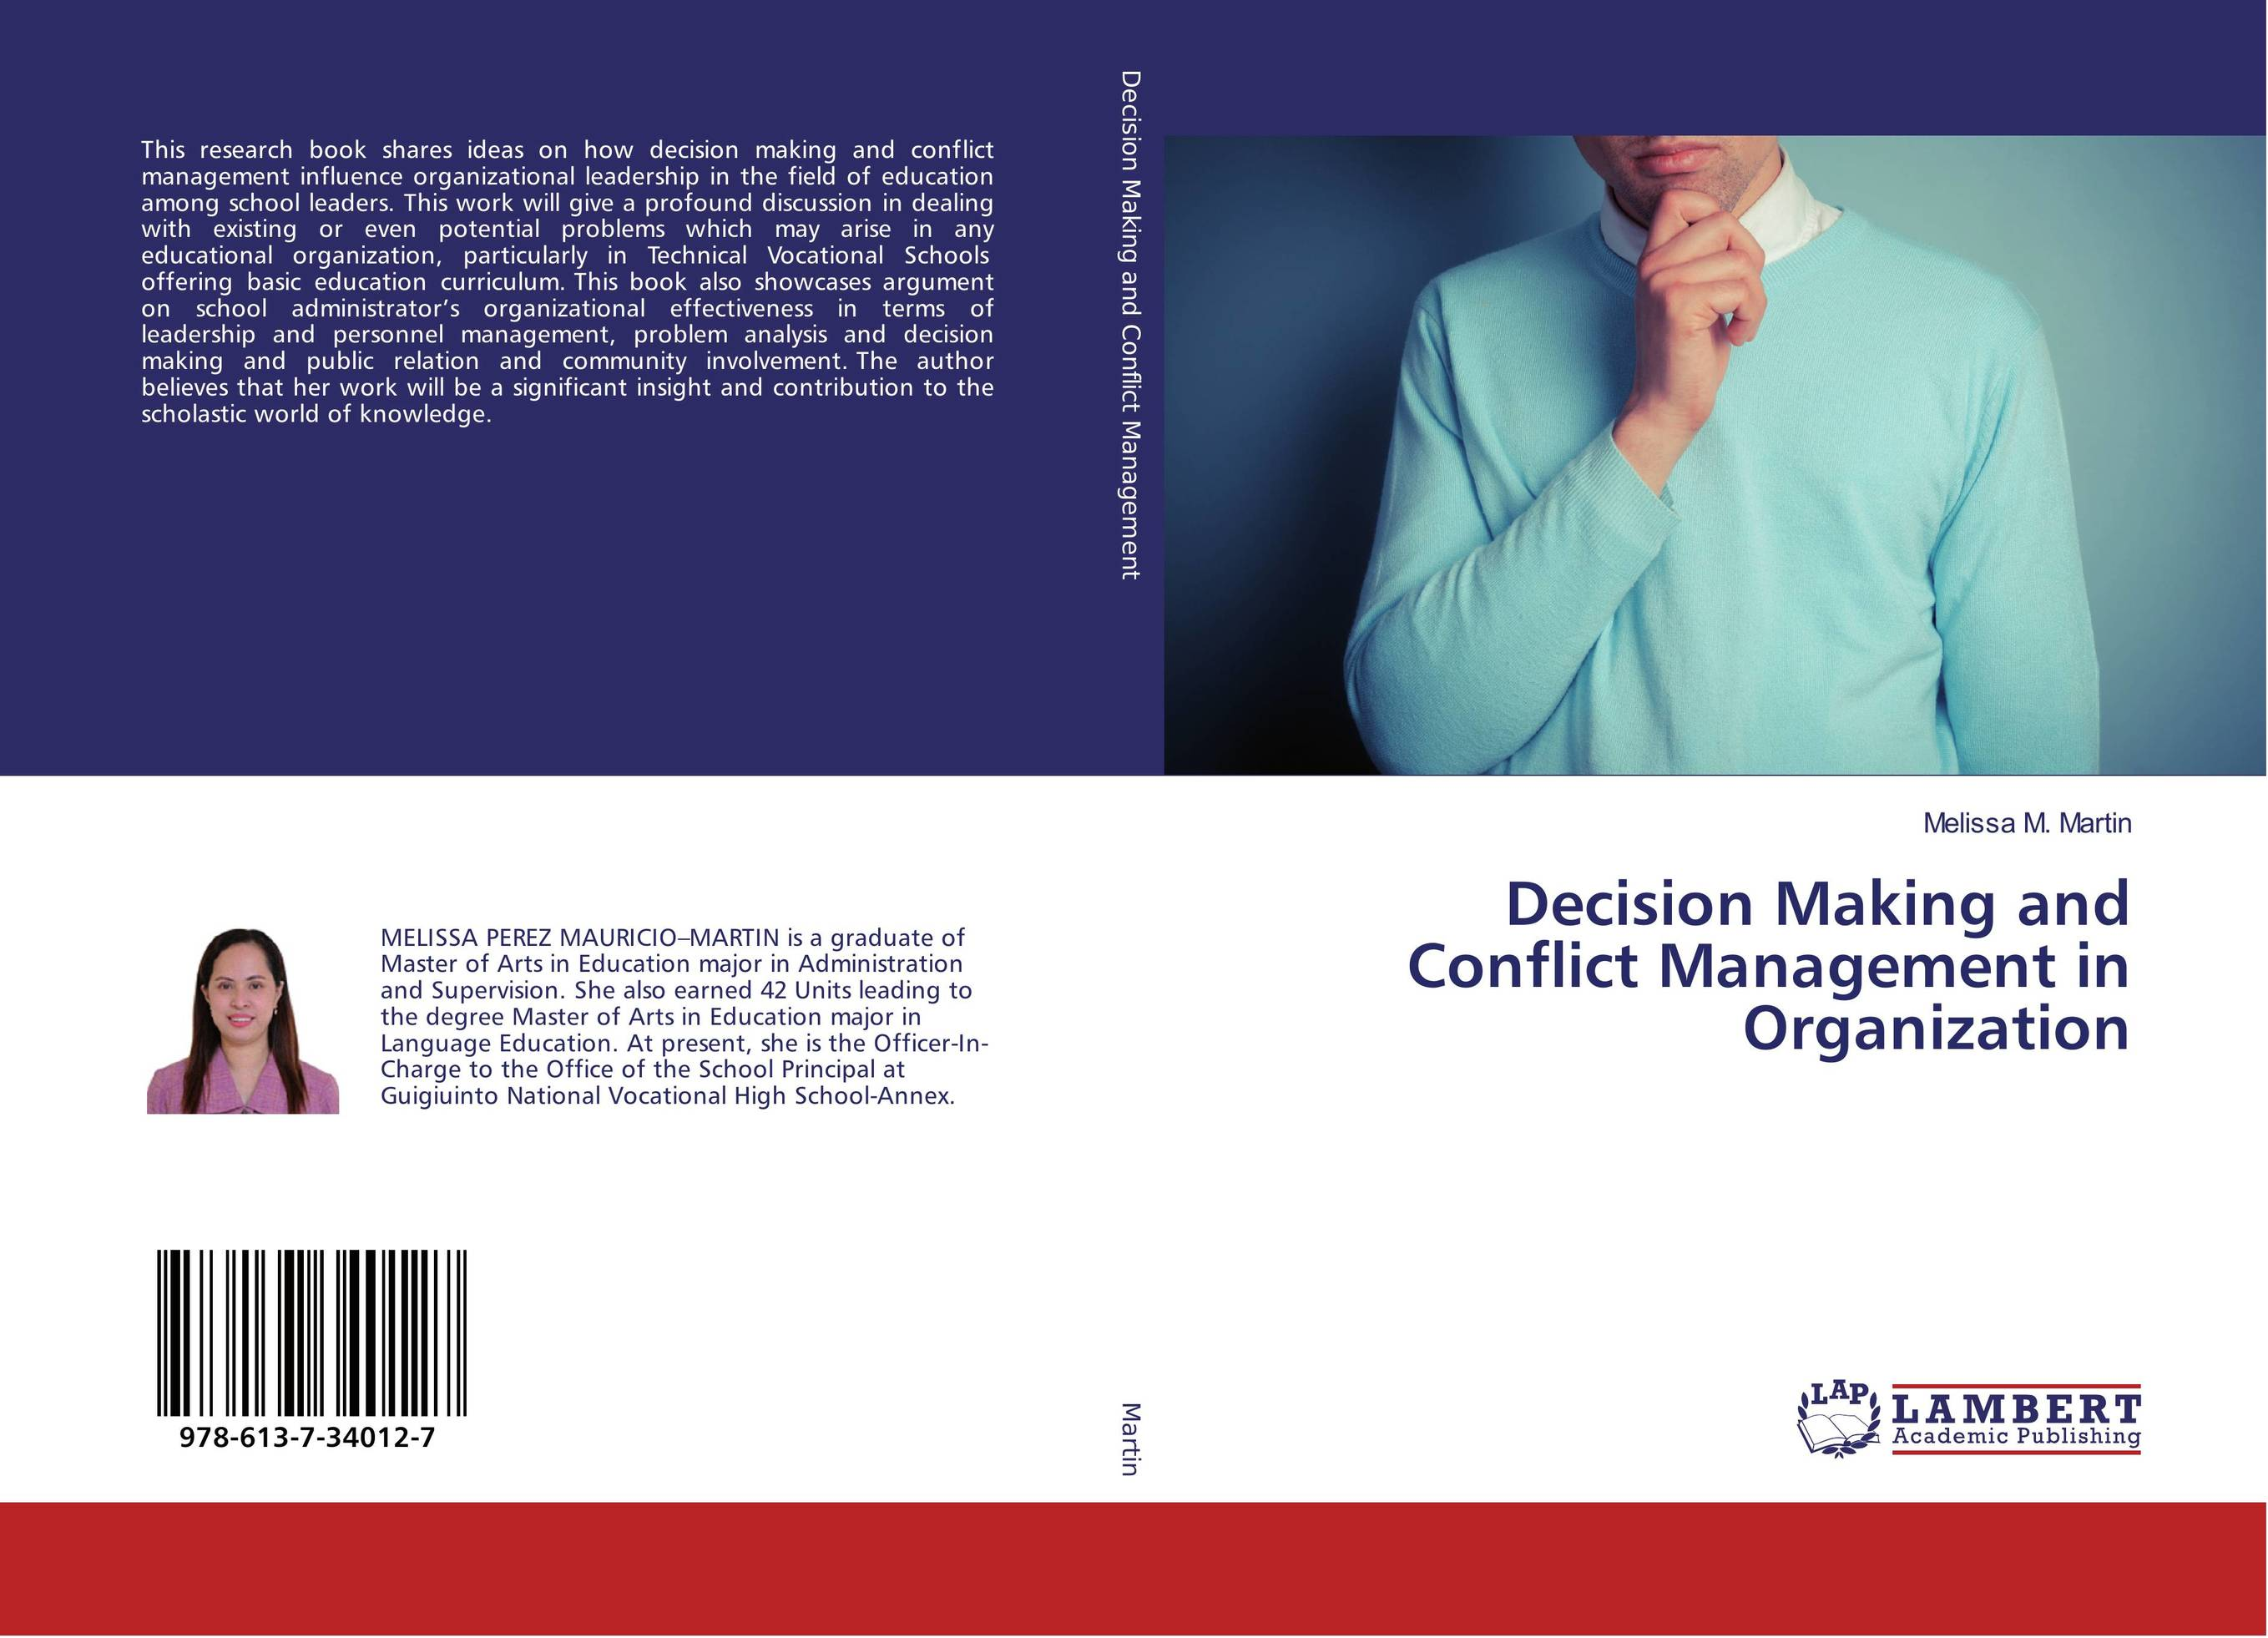 decision making in organisation In psychology, decision-making (also spelled decision making and decisionmaking) is regarded as the cognitive process resulting in the selection of a belief or a course of action among several alternative possibilities.